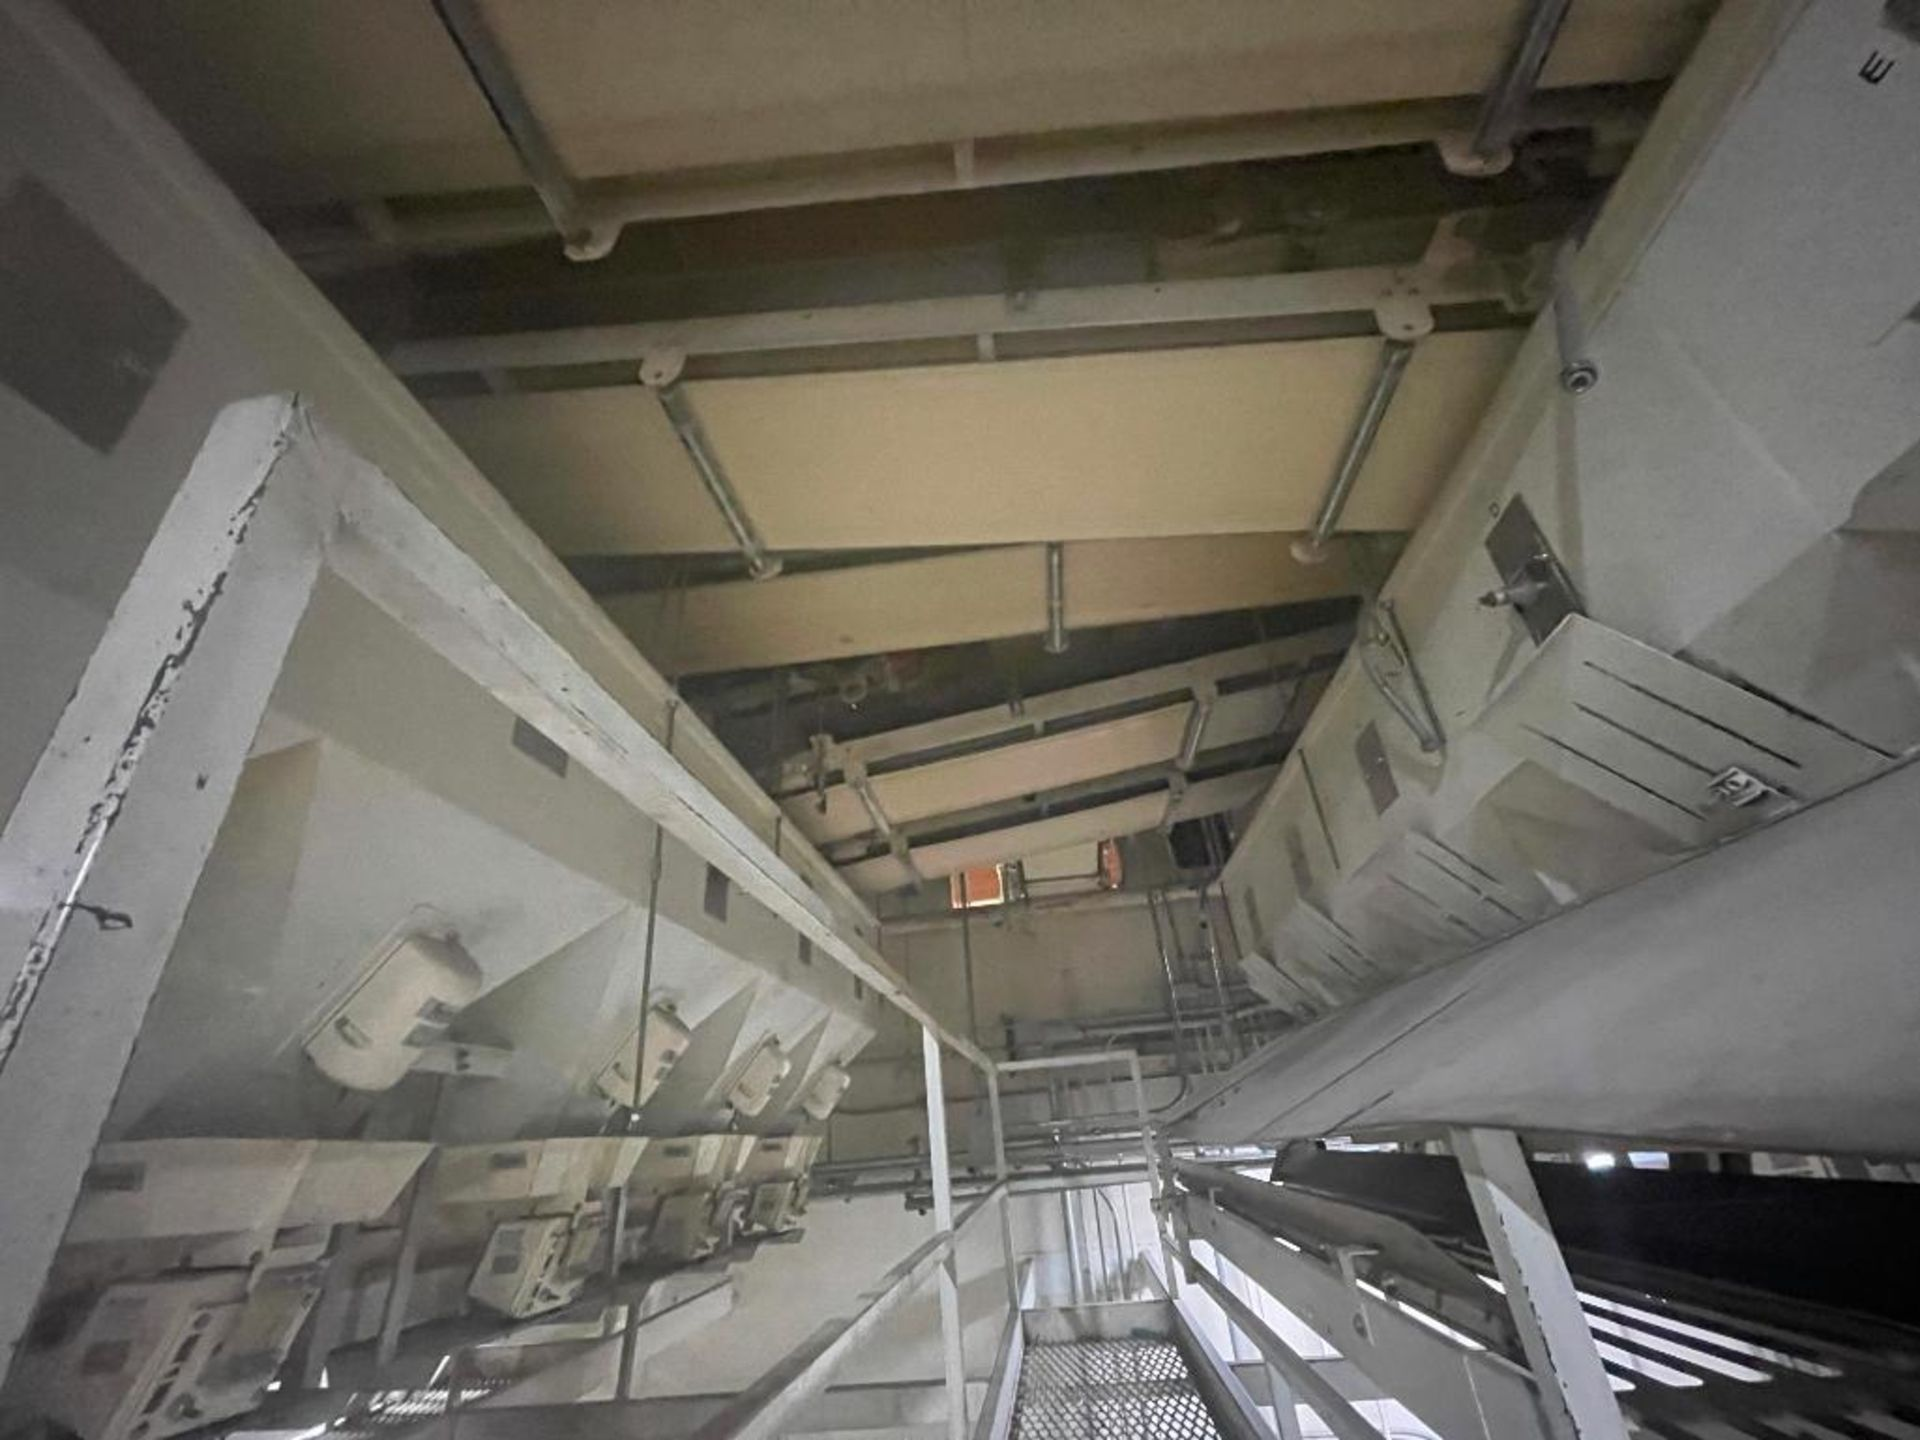 5 overhead conveyors, white rubber belt - Image 6 of 9